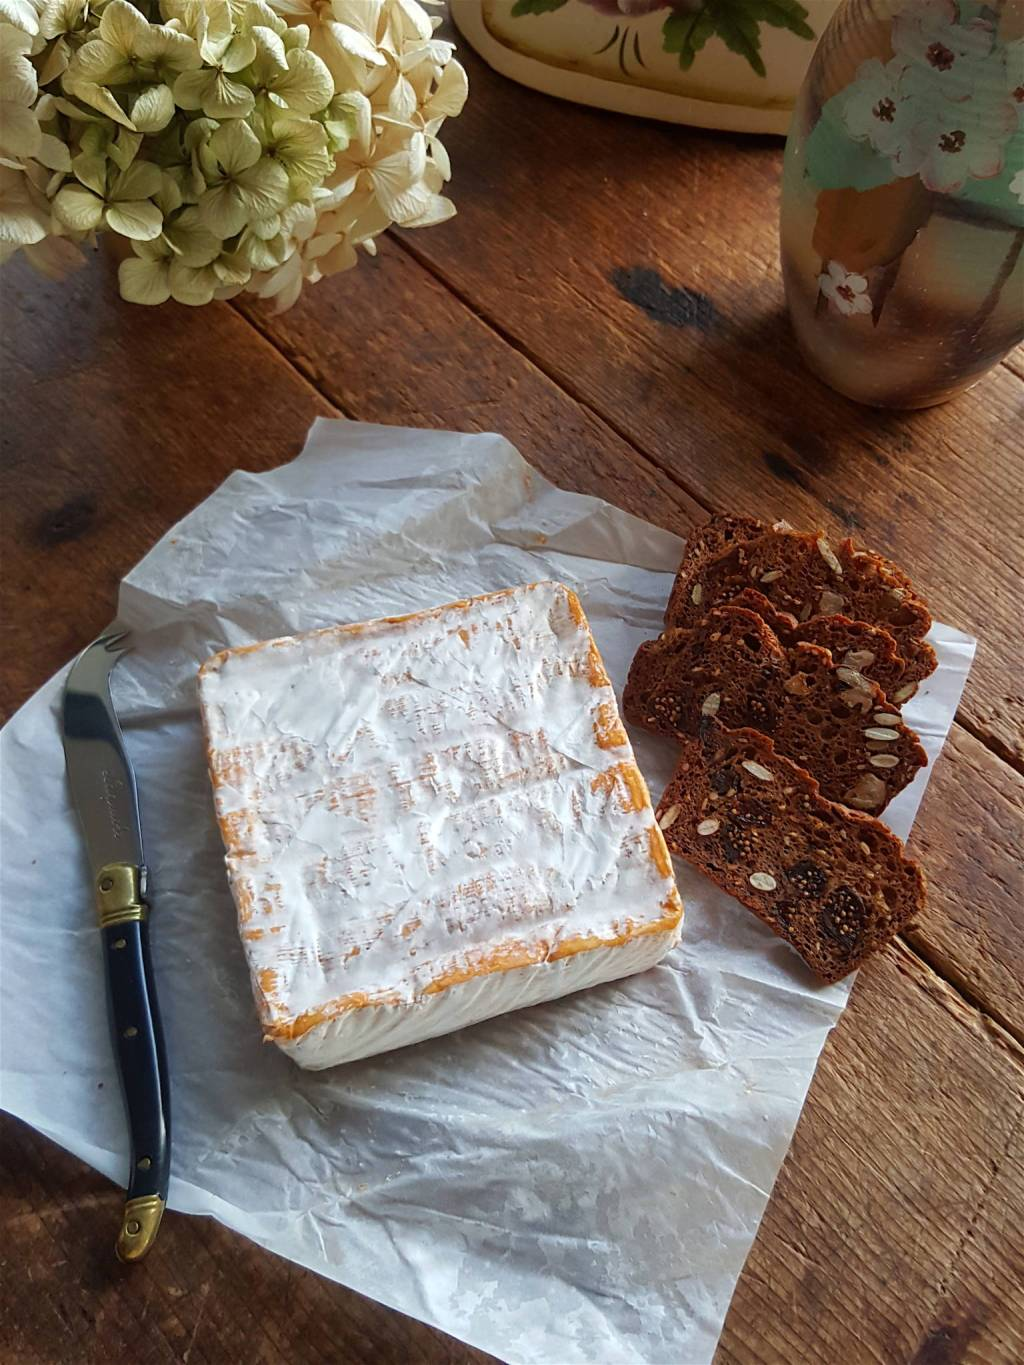 NZ Over the Moon Galac tic Gold washed rind cheese